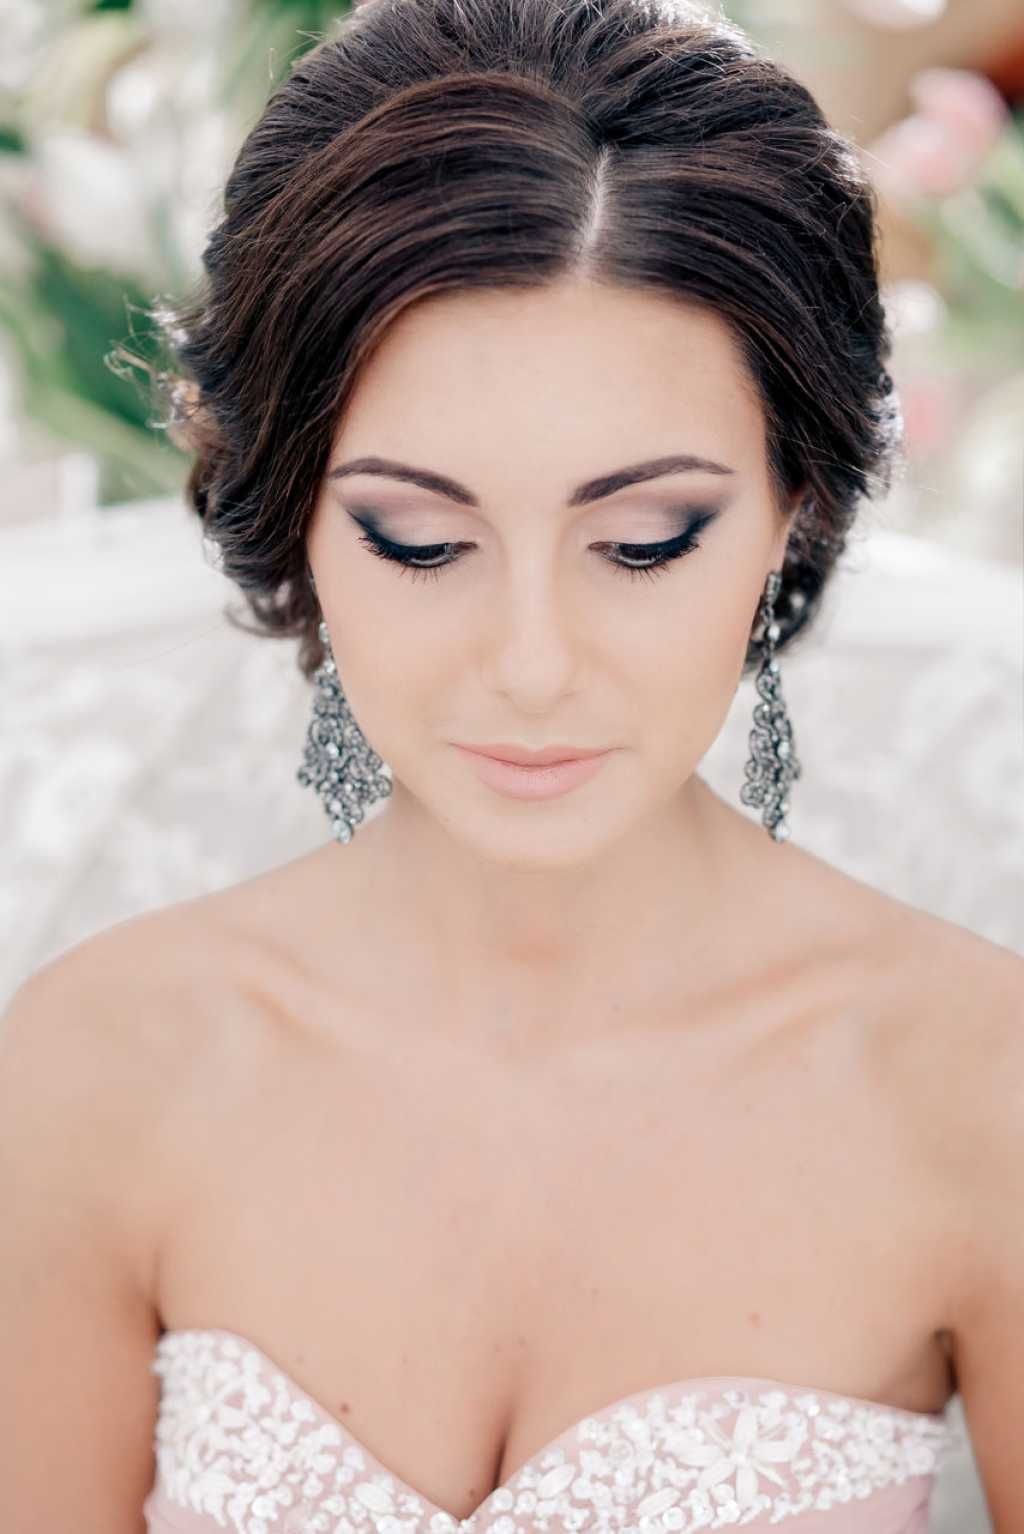 Fashion week Makeup Wedding ideas for brunettes for lady